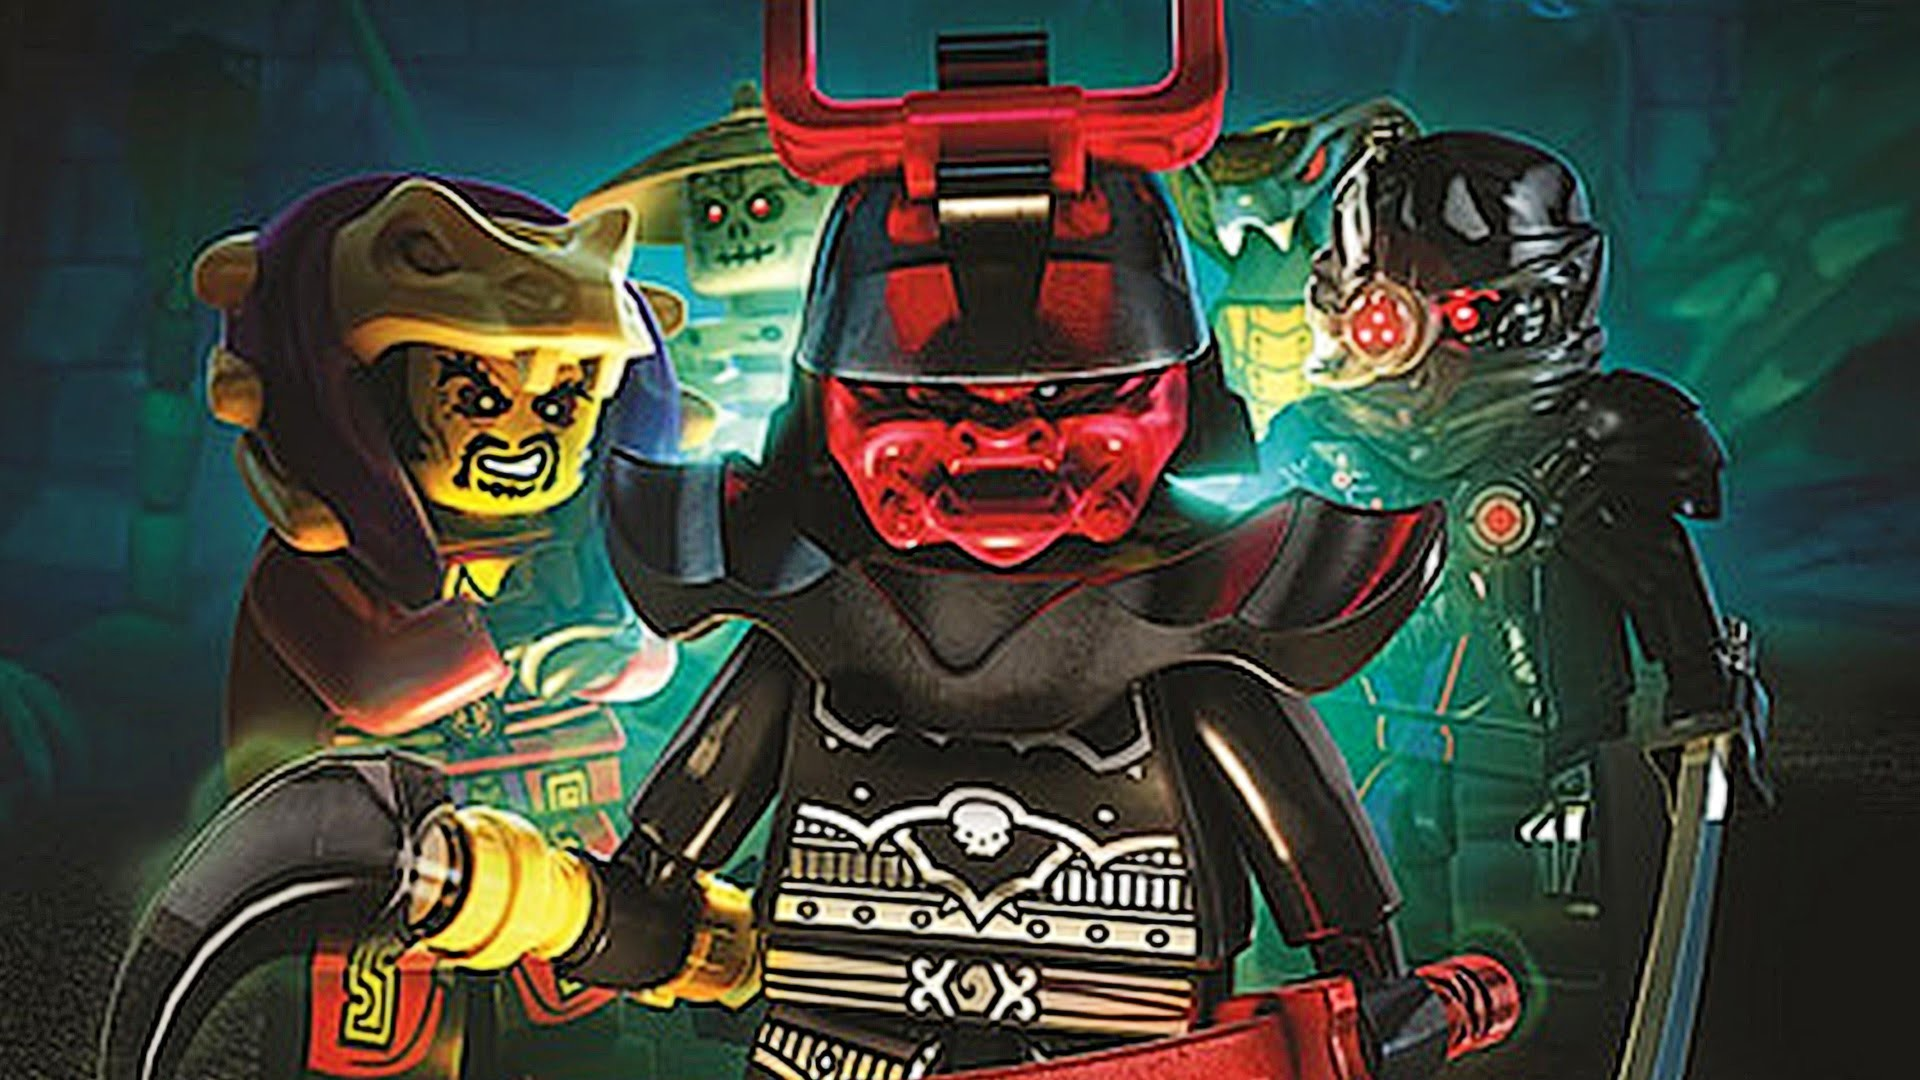 1920x1080 LEGO NINJAGO SHADOW OF RONIN ALL VILLIANS REVEALED! (ANALYSIS & BREAKDOWN)  Screenshot - YouTube